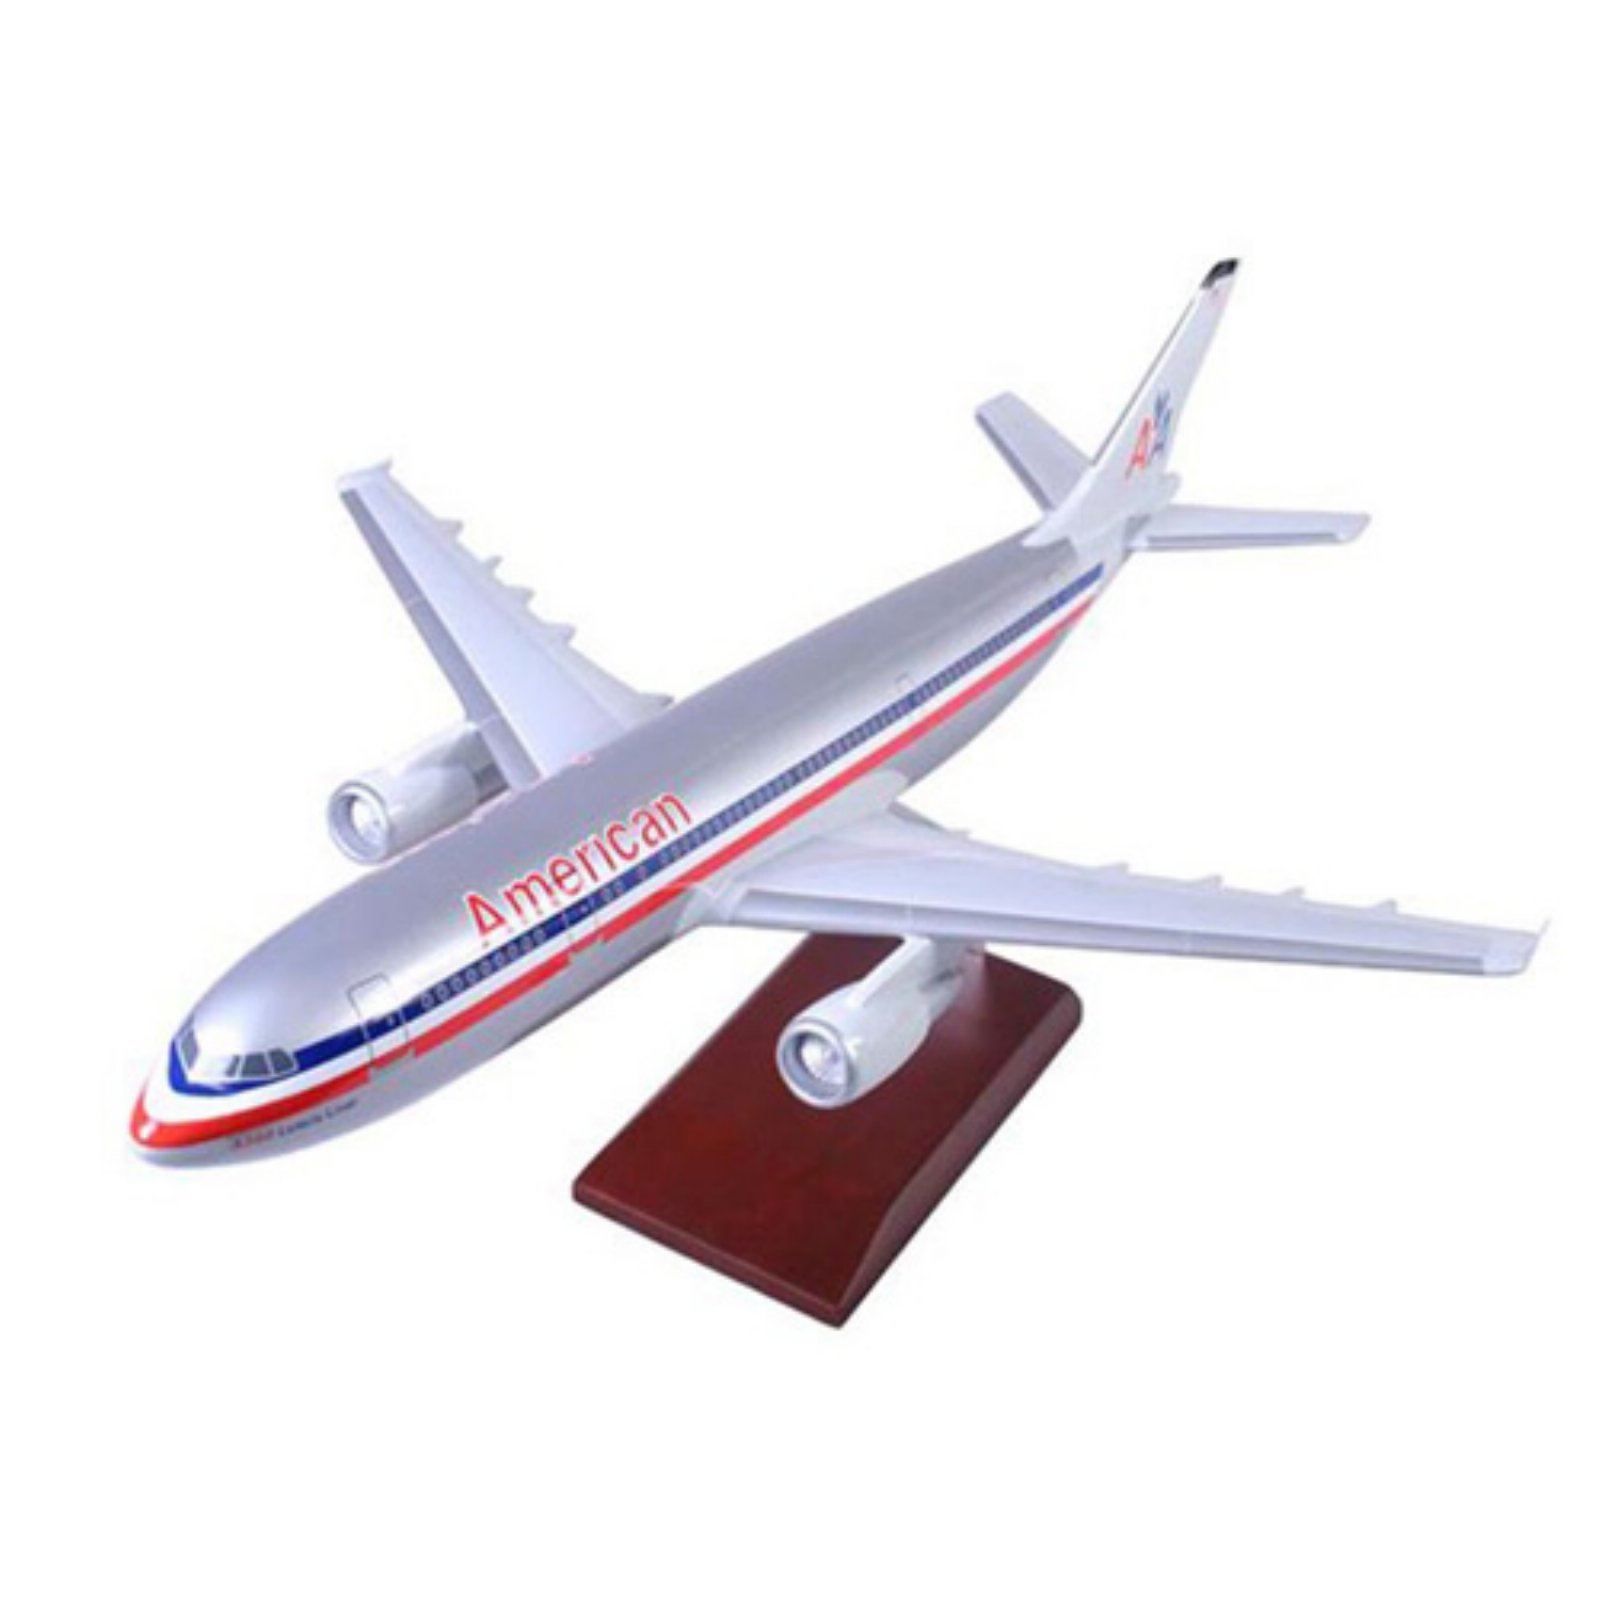 Daron Worldwide Airbus A300-600 American Model Airplane by DARON